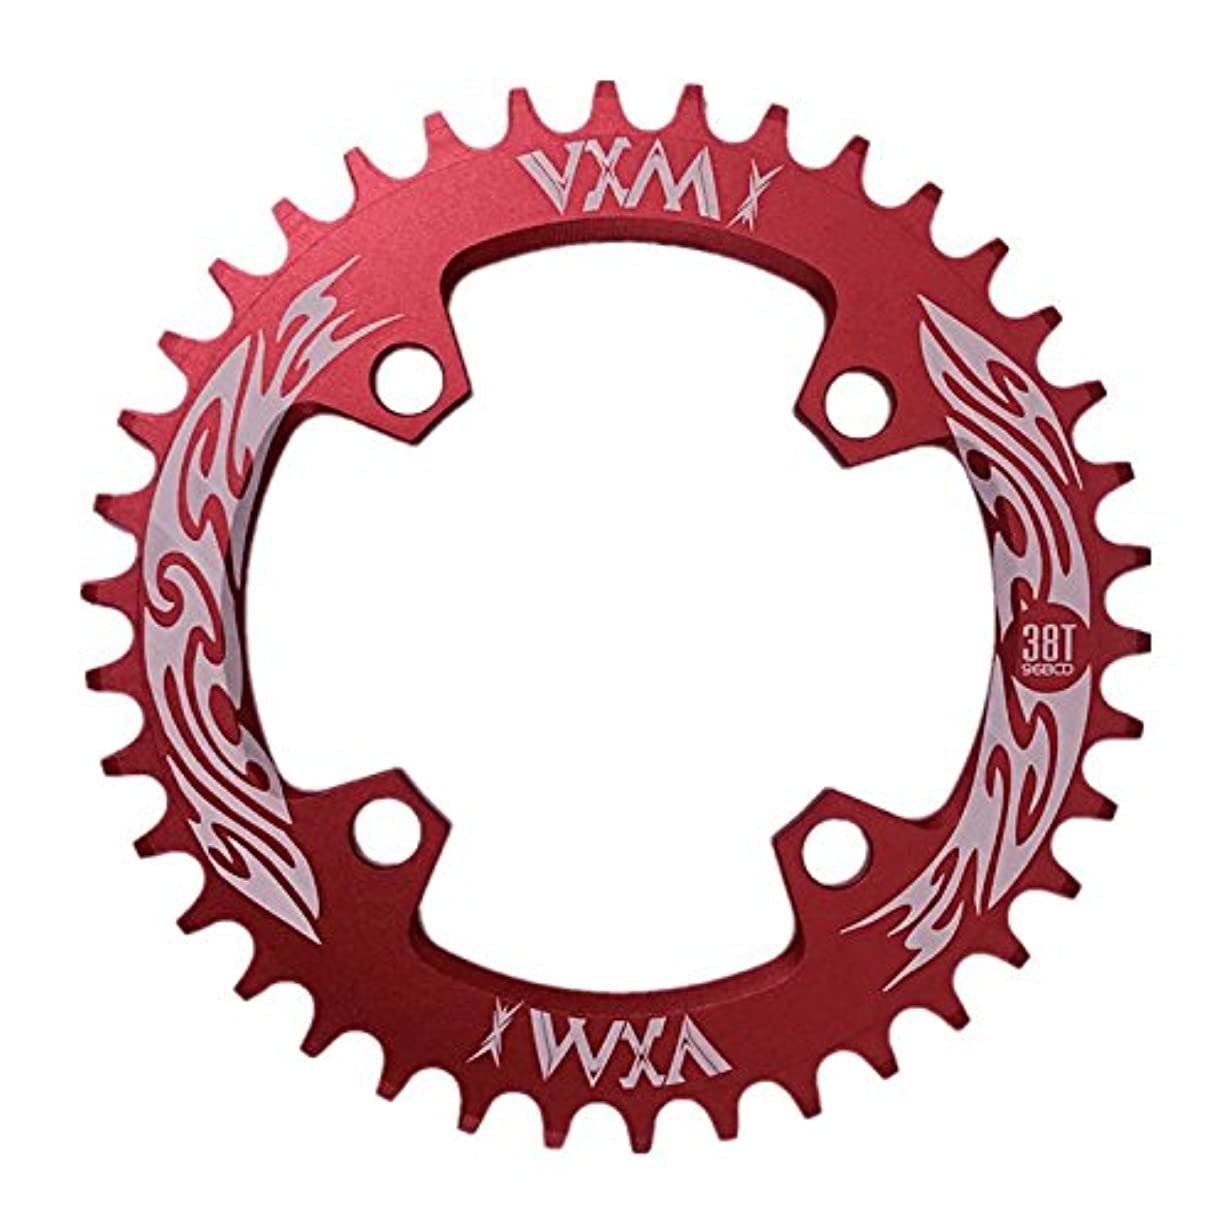 そして梨対応Propenary - Bicycle Crank & Chainwheel 96BCD 38T Ultralight Alloy Bike Bicycle Narrow Wide Chainring Round Chainwheel Cycle Crankset [ Red ]